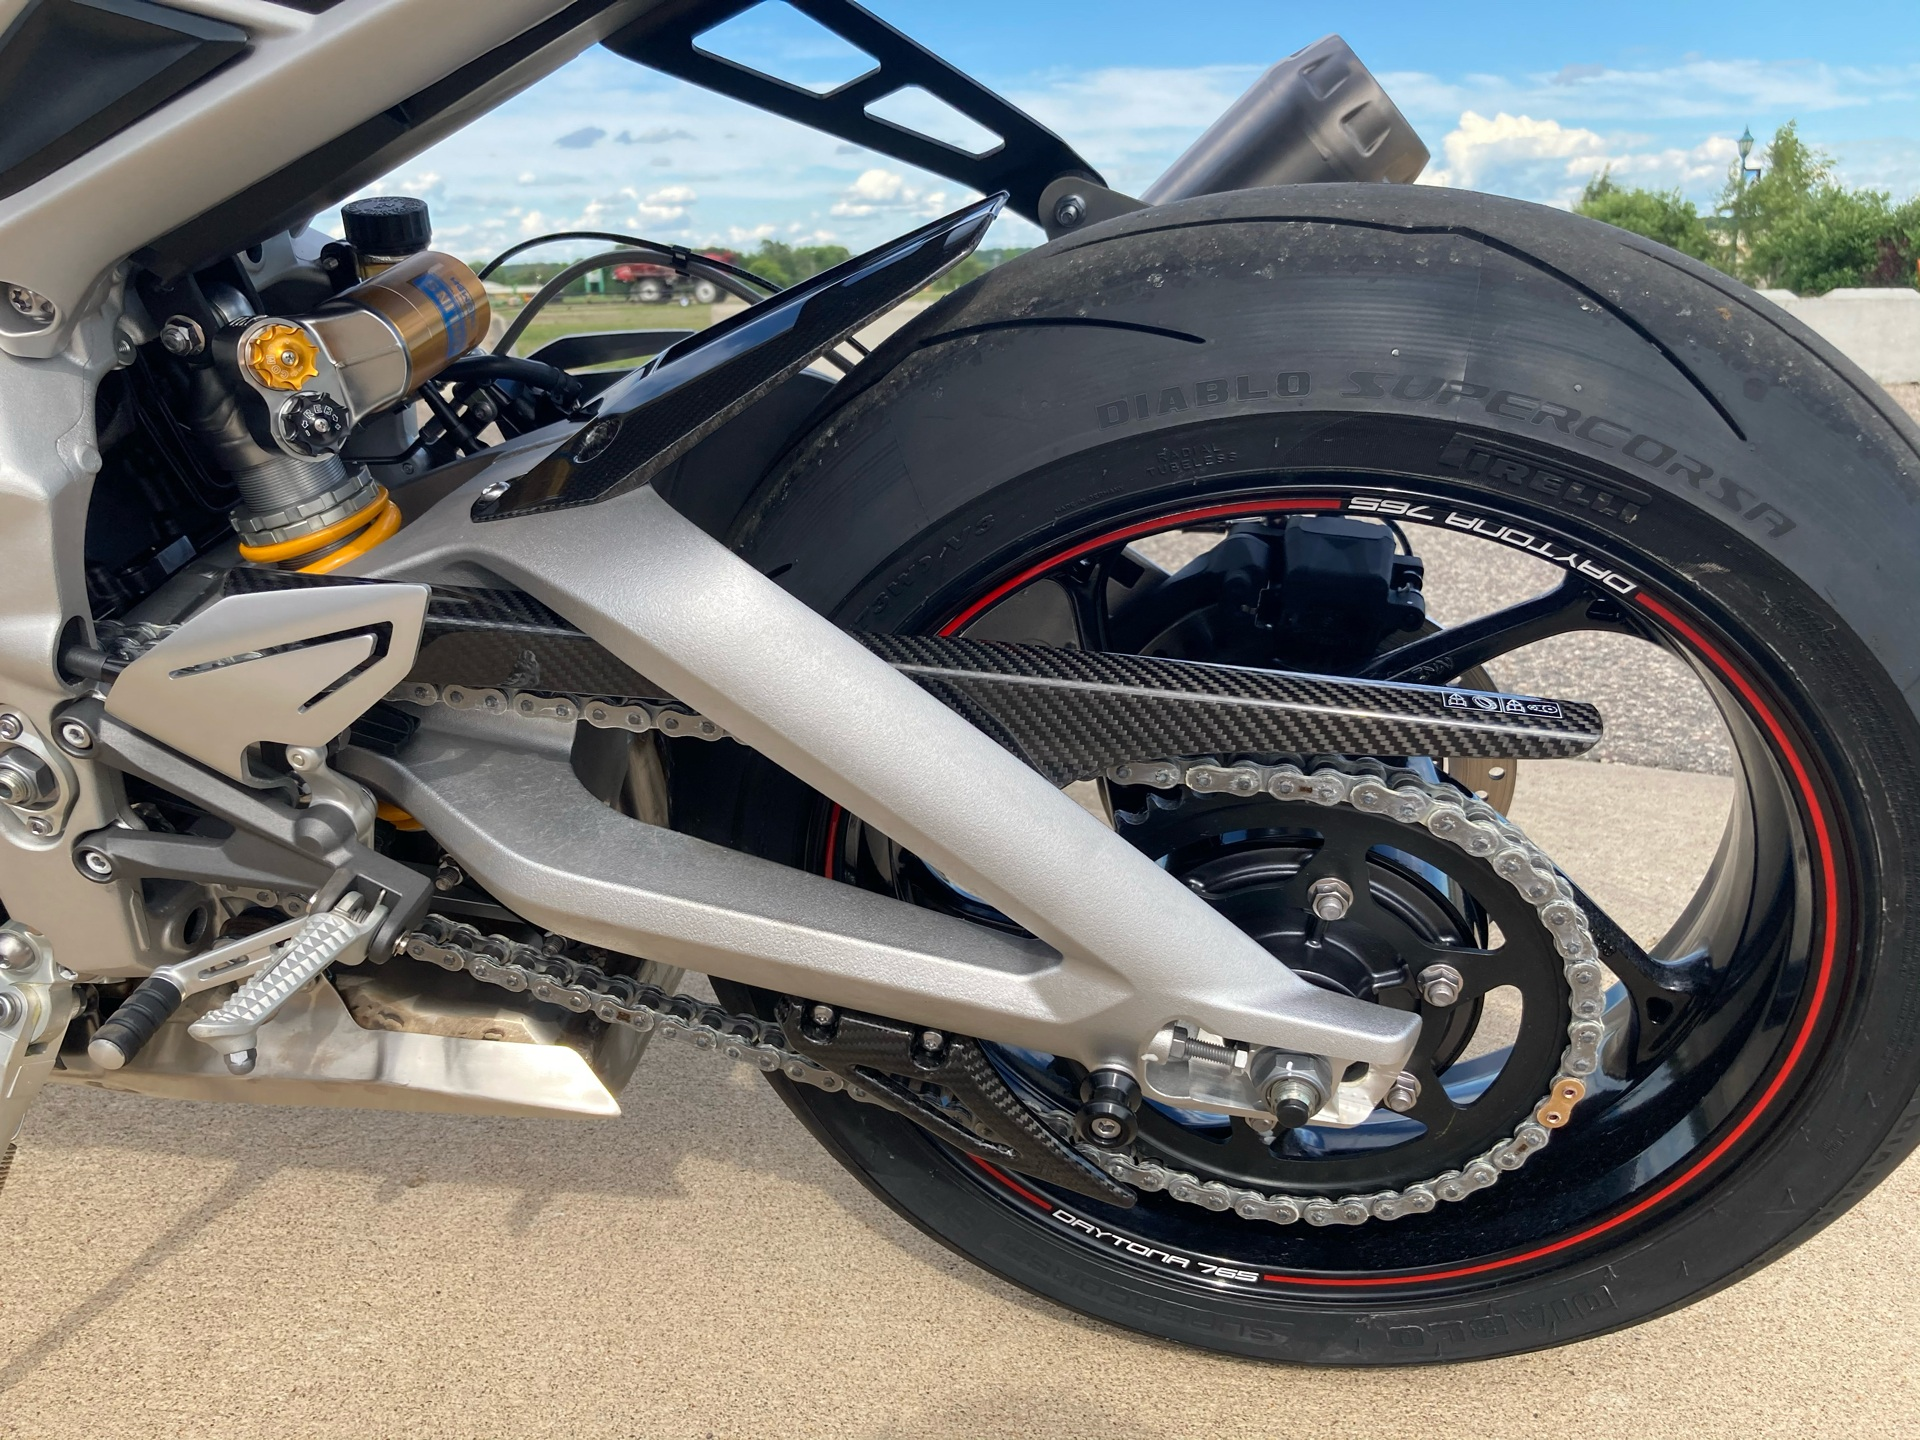 2020 Triumph Daytona Moto 2 Limited Edition in Belle Plaine, Minnesota - Photo 14